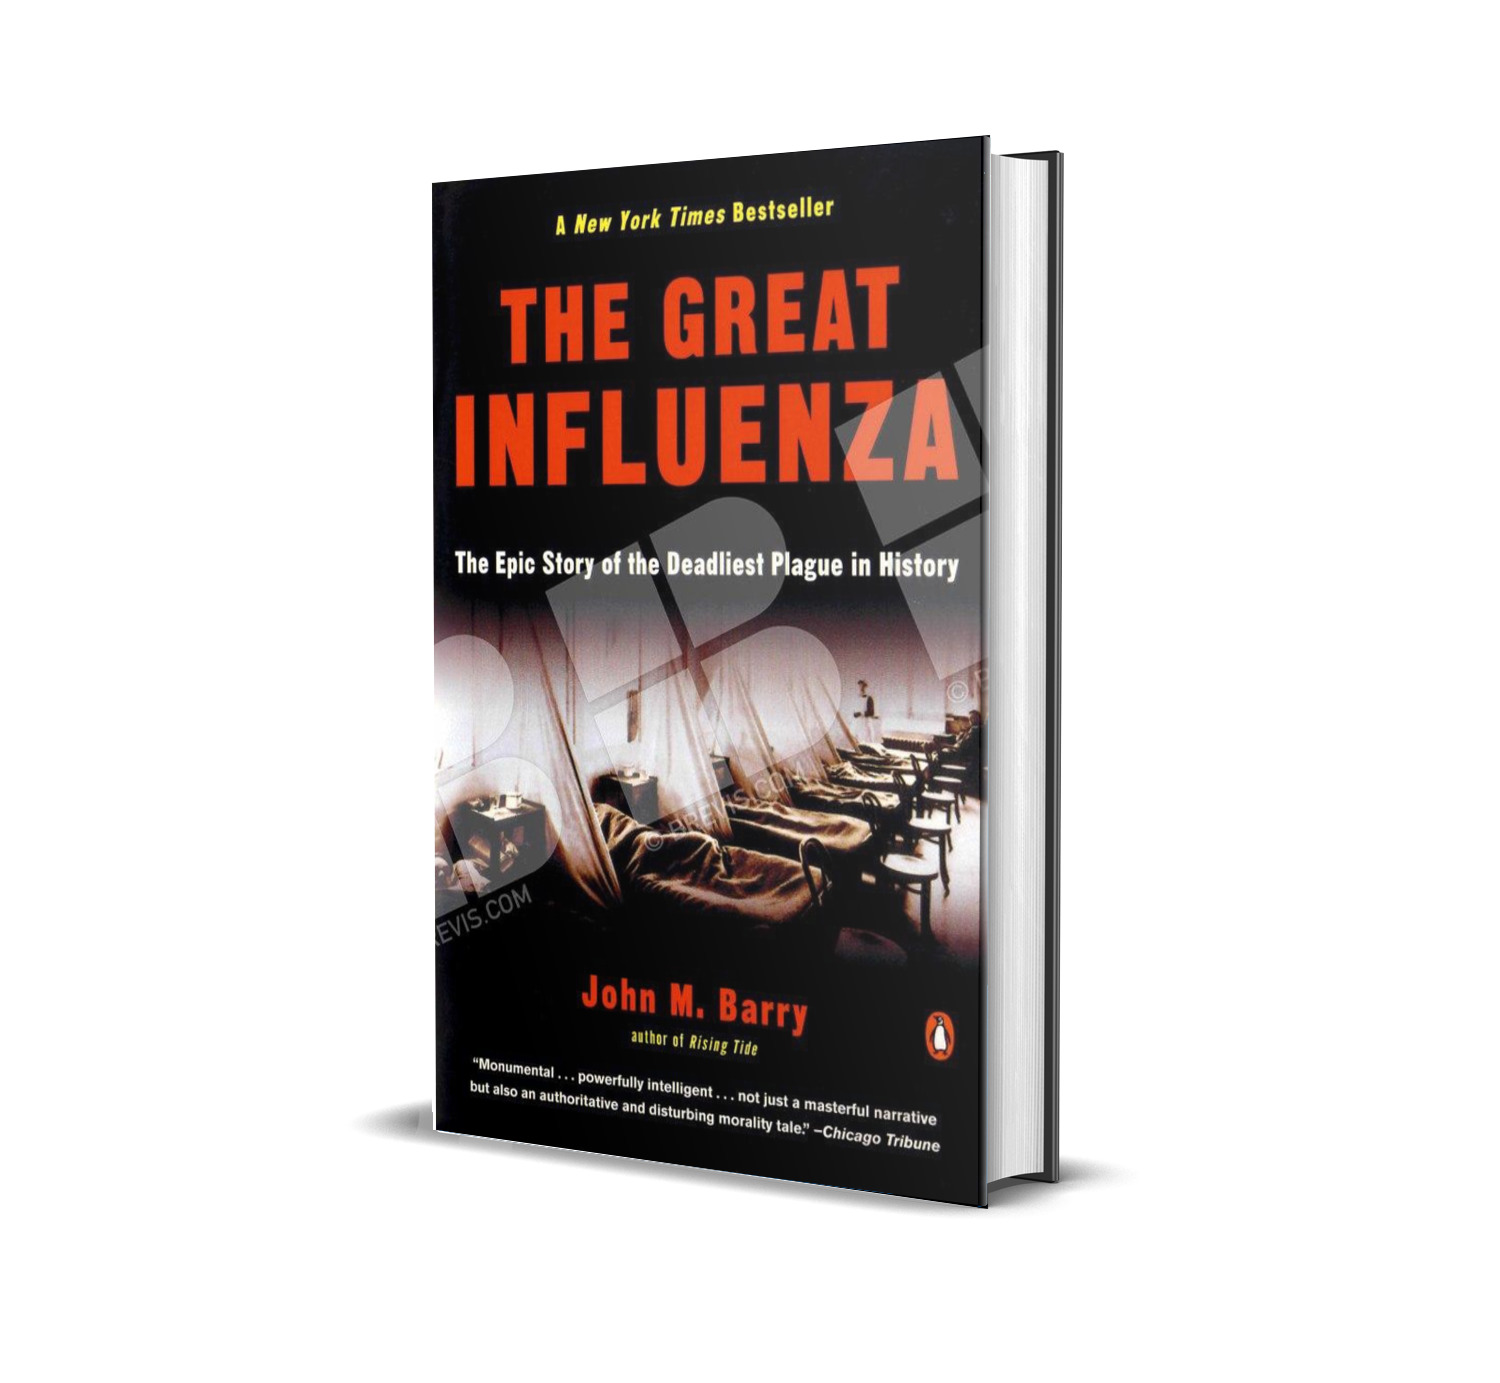 The Great Influenza : The story of the deadliest pandemic in history - John M. Barry